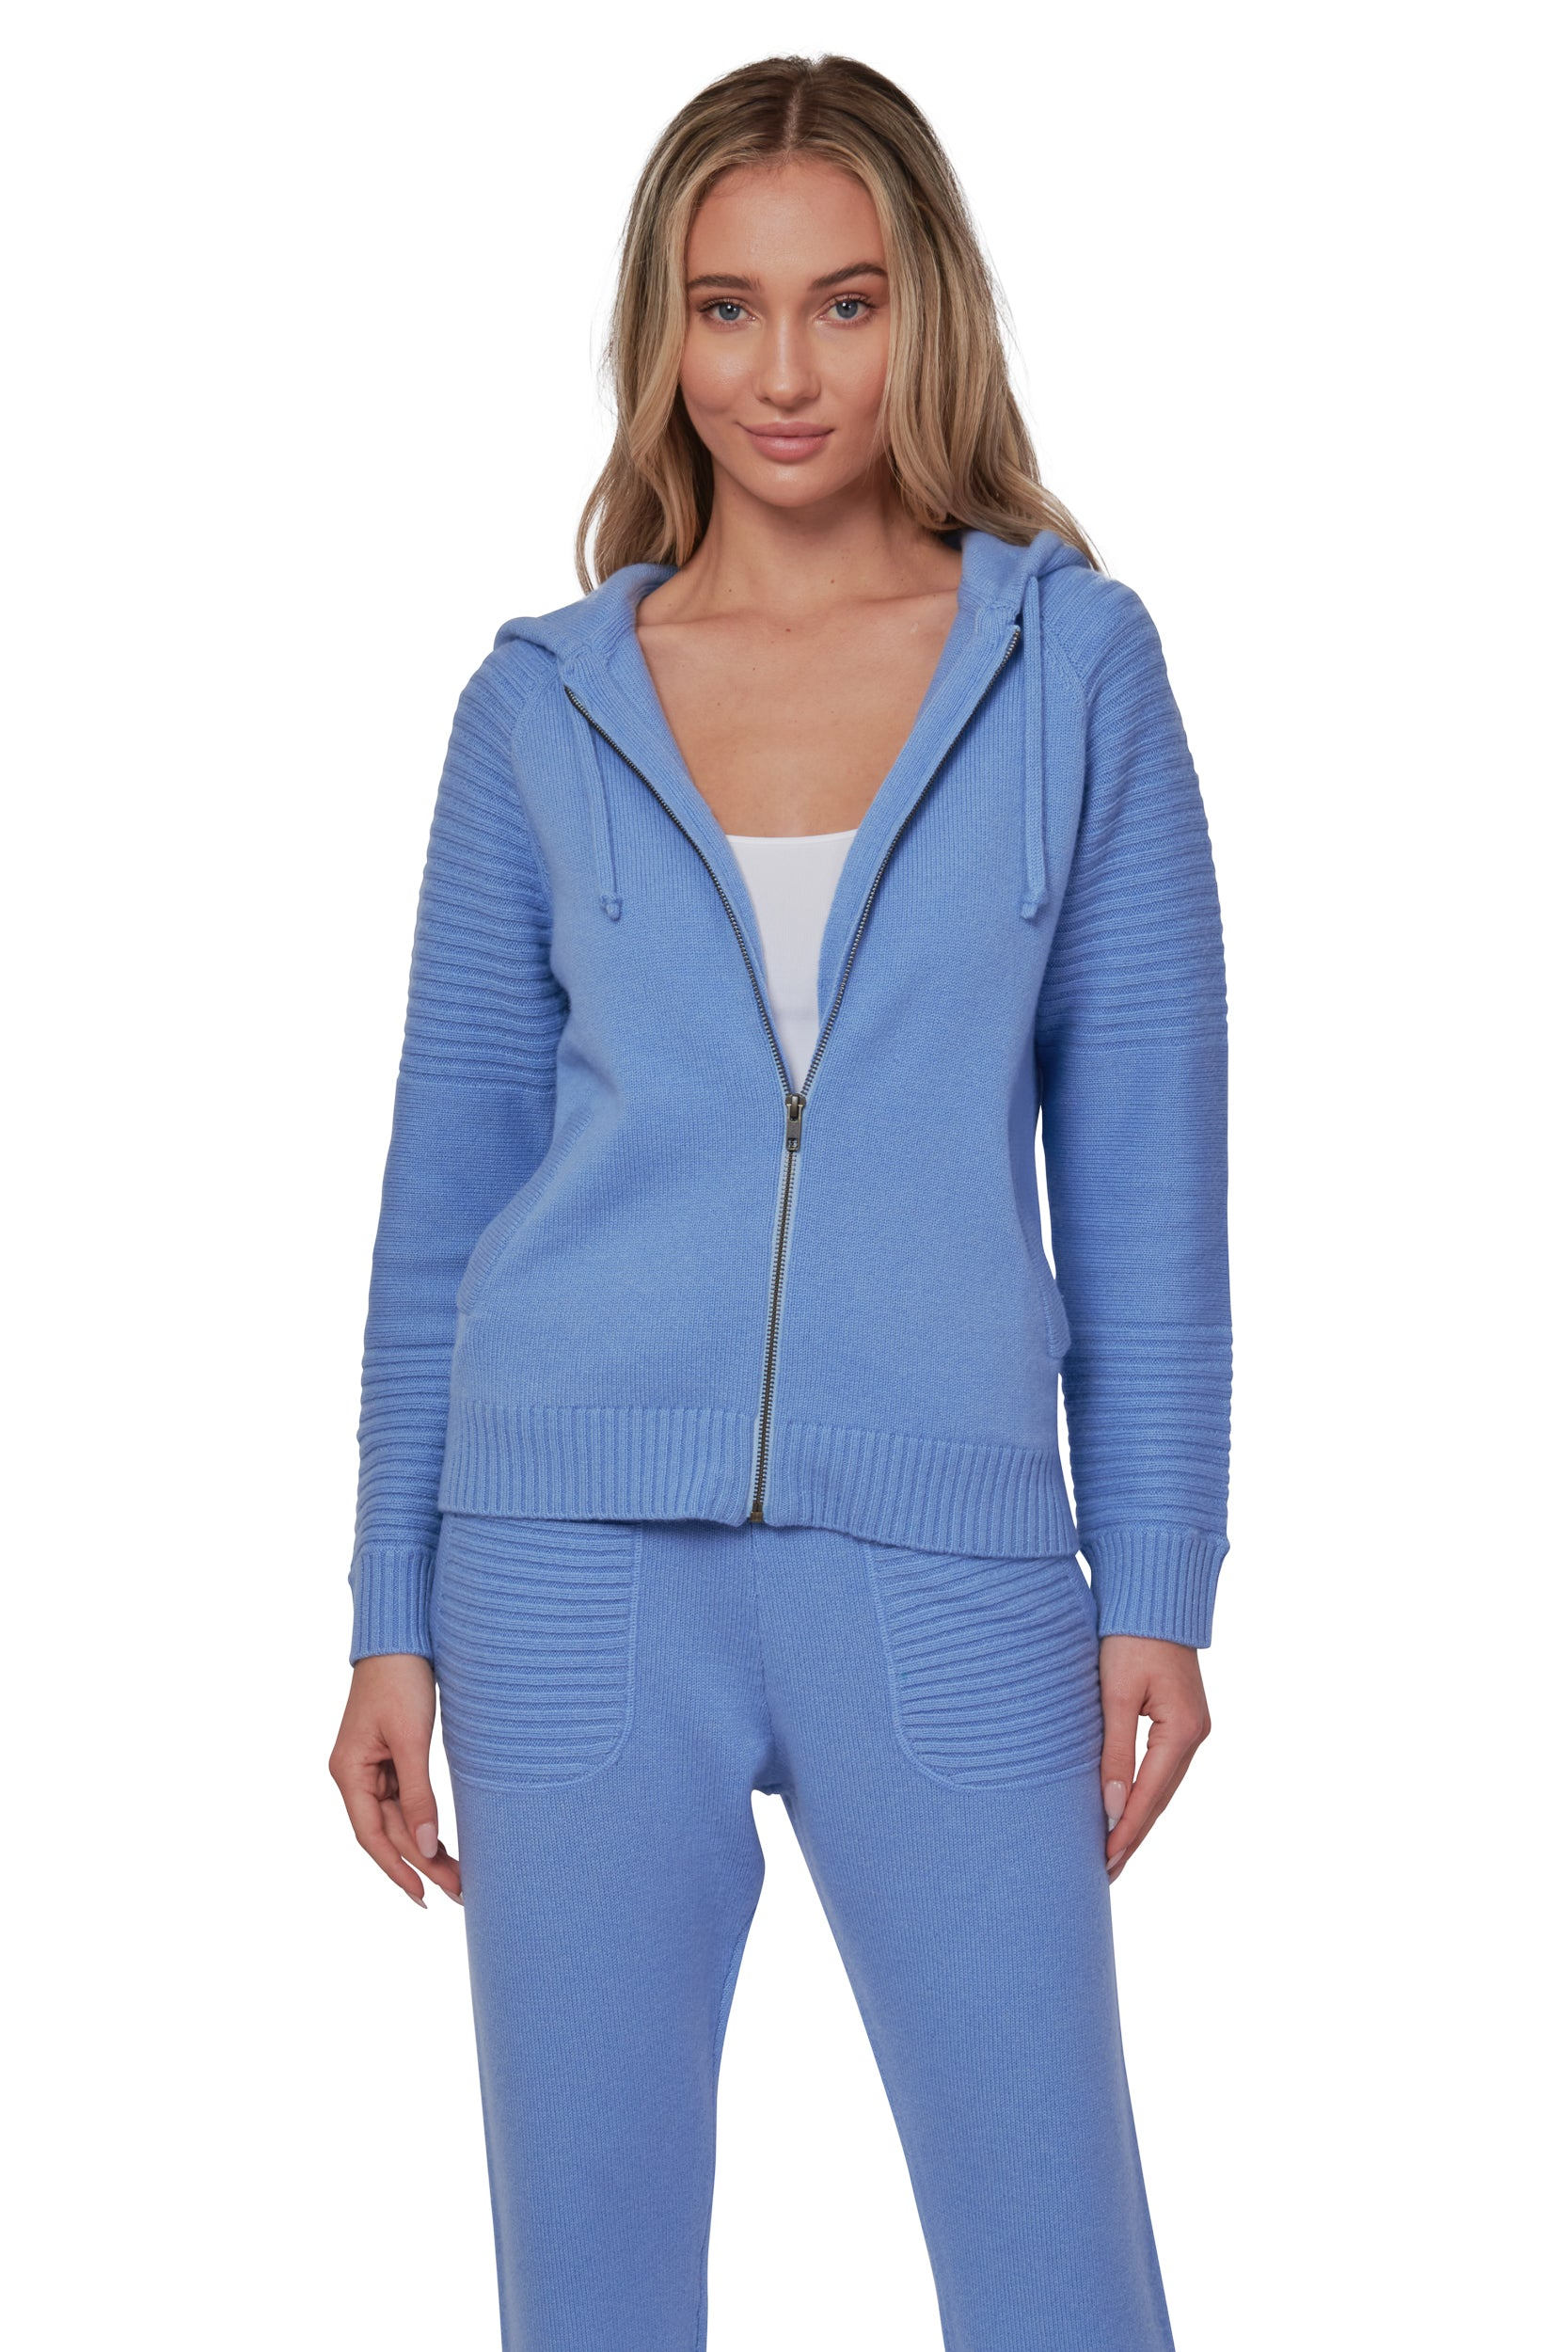 Periwinkle Cashmere Zip up